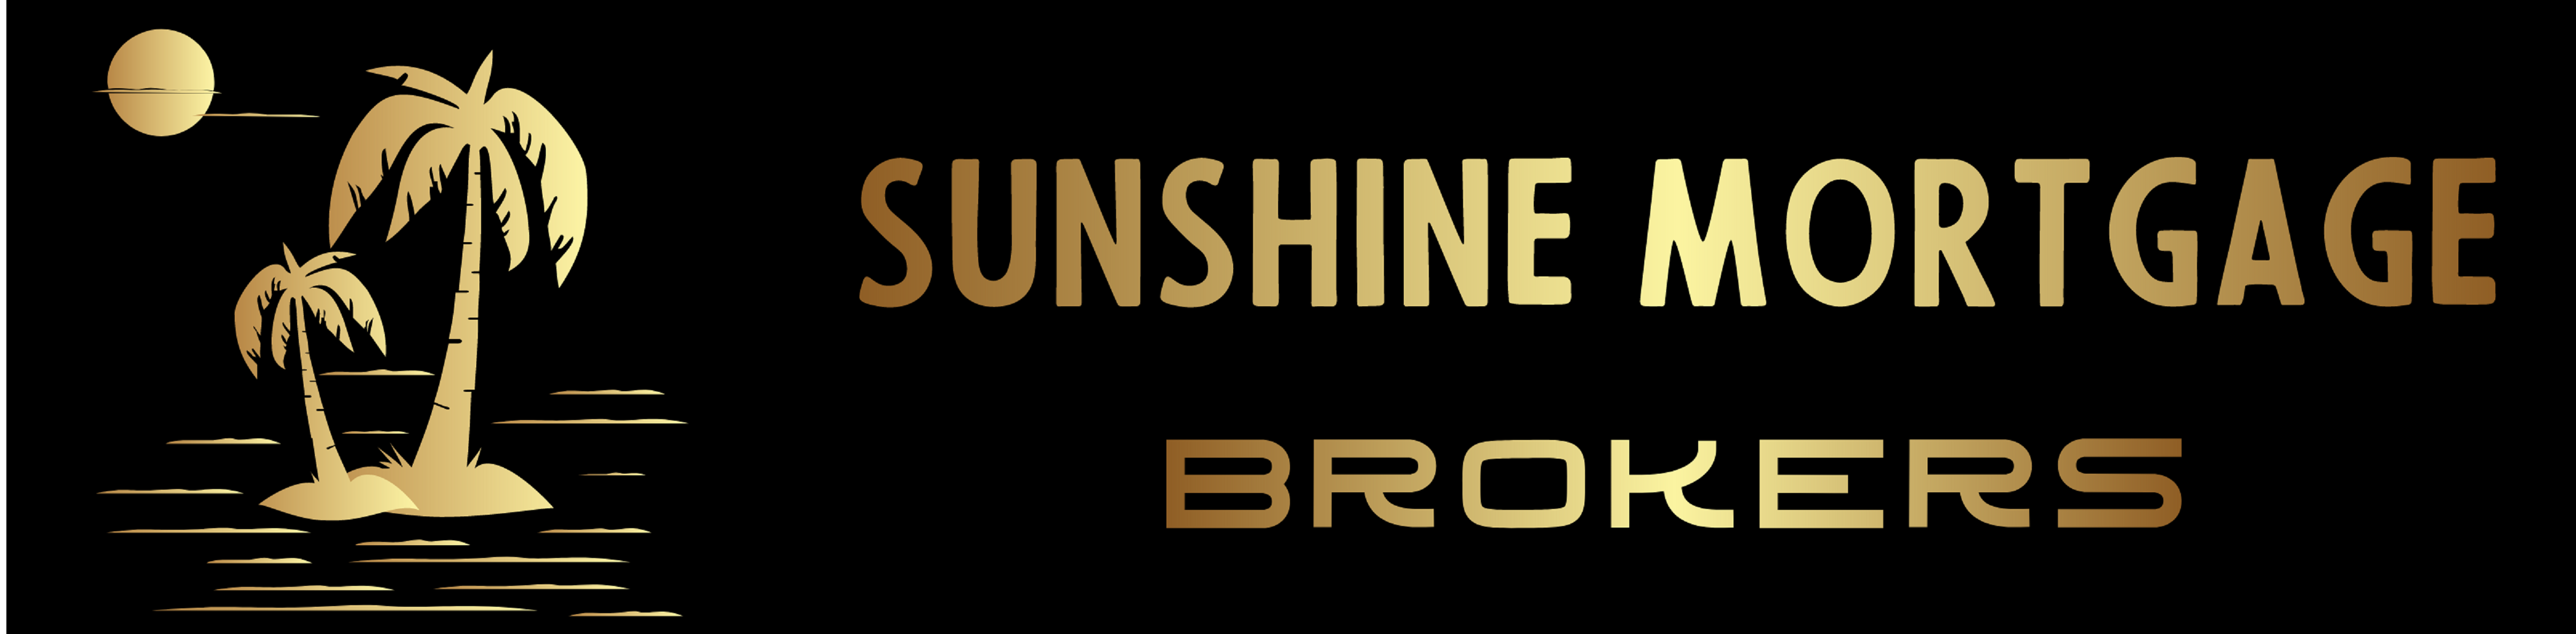 Sunshine Mortgage Brokers